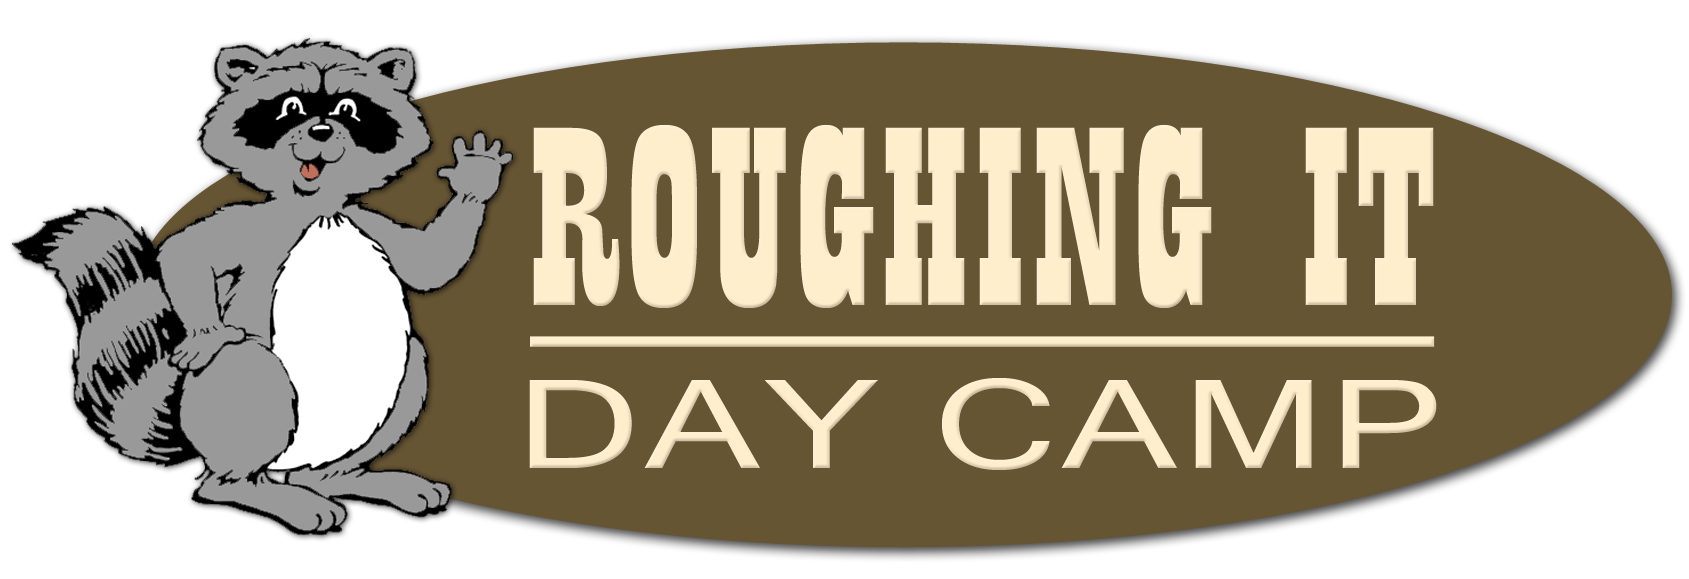 Roughing It Day Camp: CILT Program